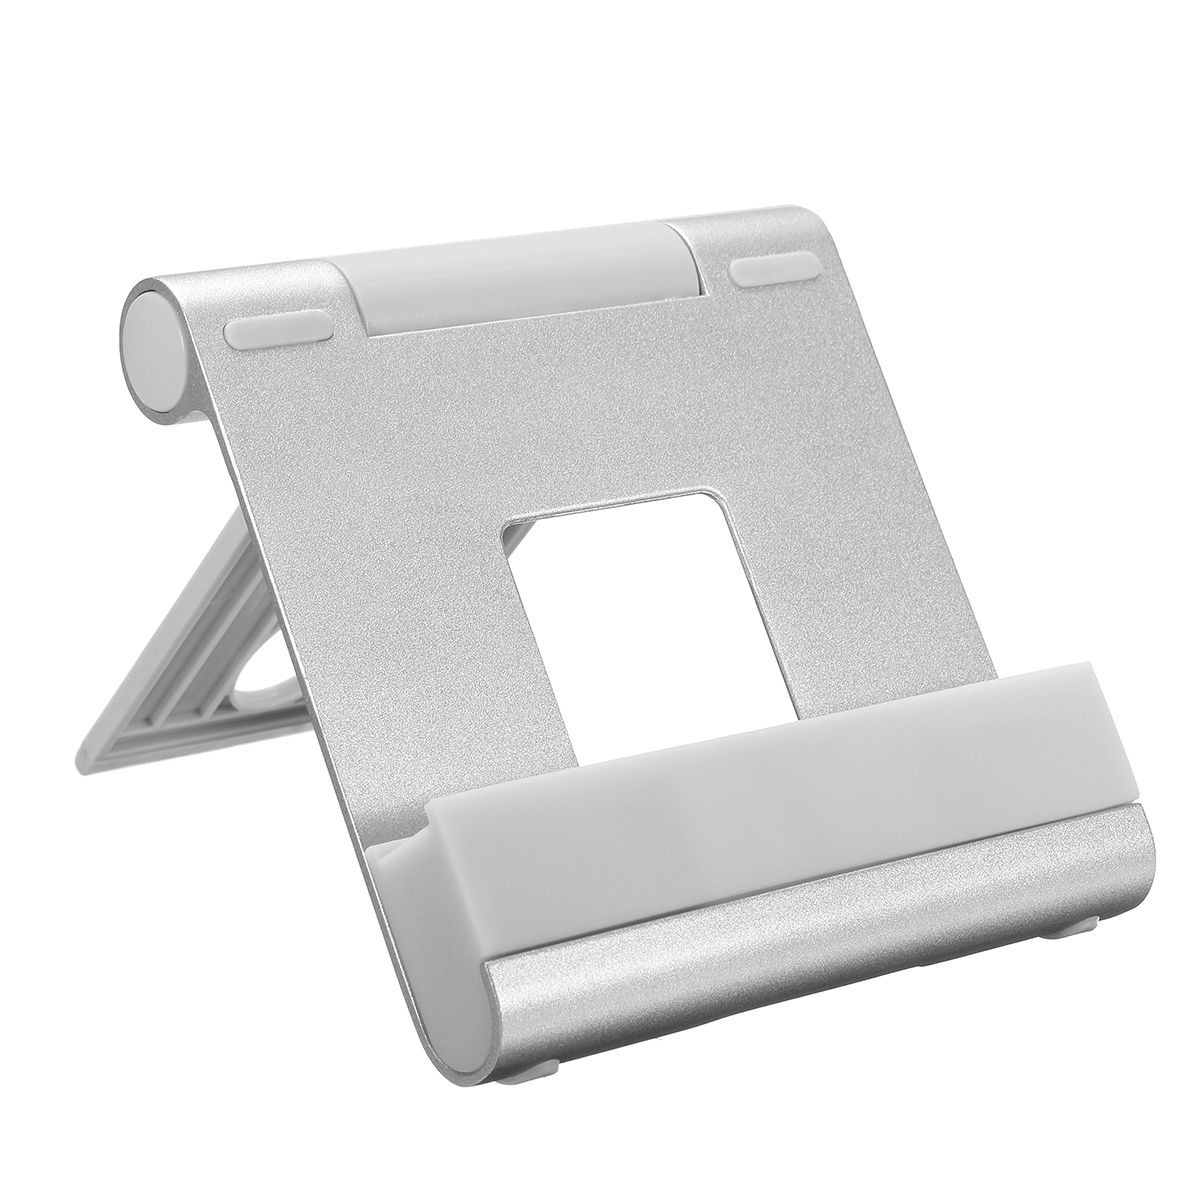 Universal Aluminum Adjustable Desktop Stand Holder Mount for iPhone Samsung Tablet PC